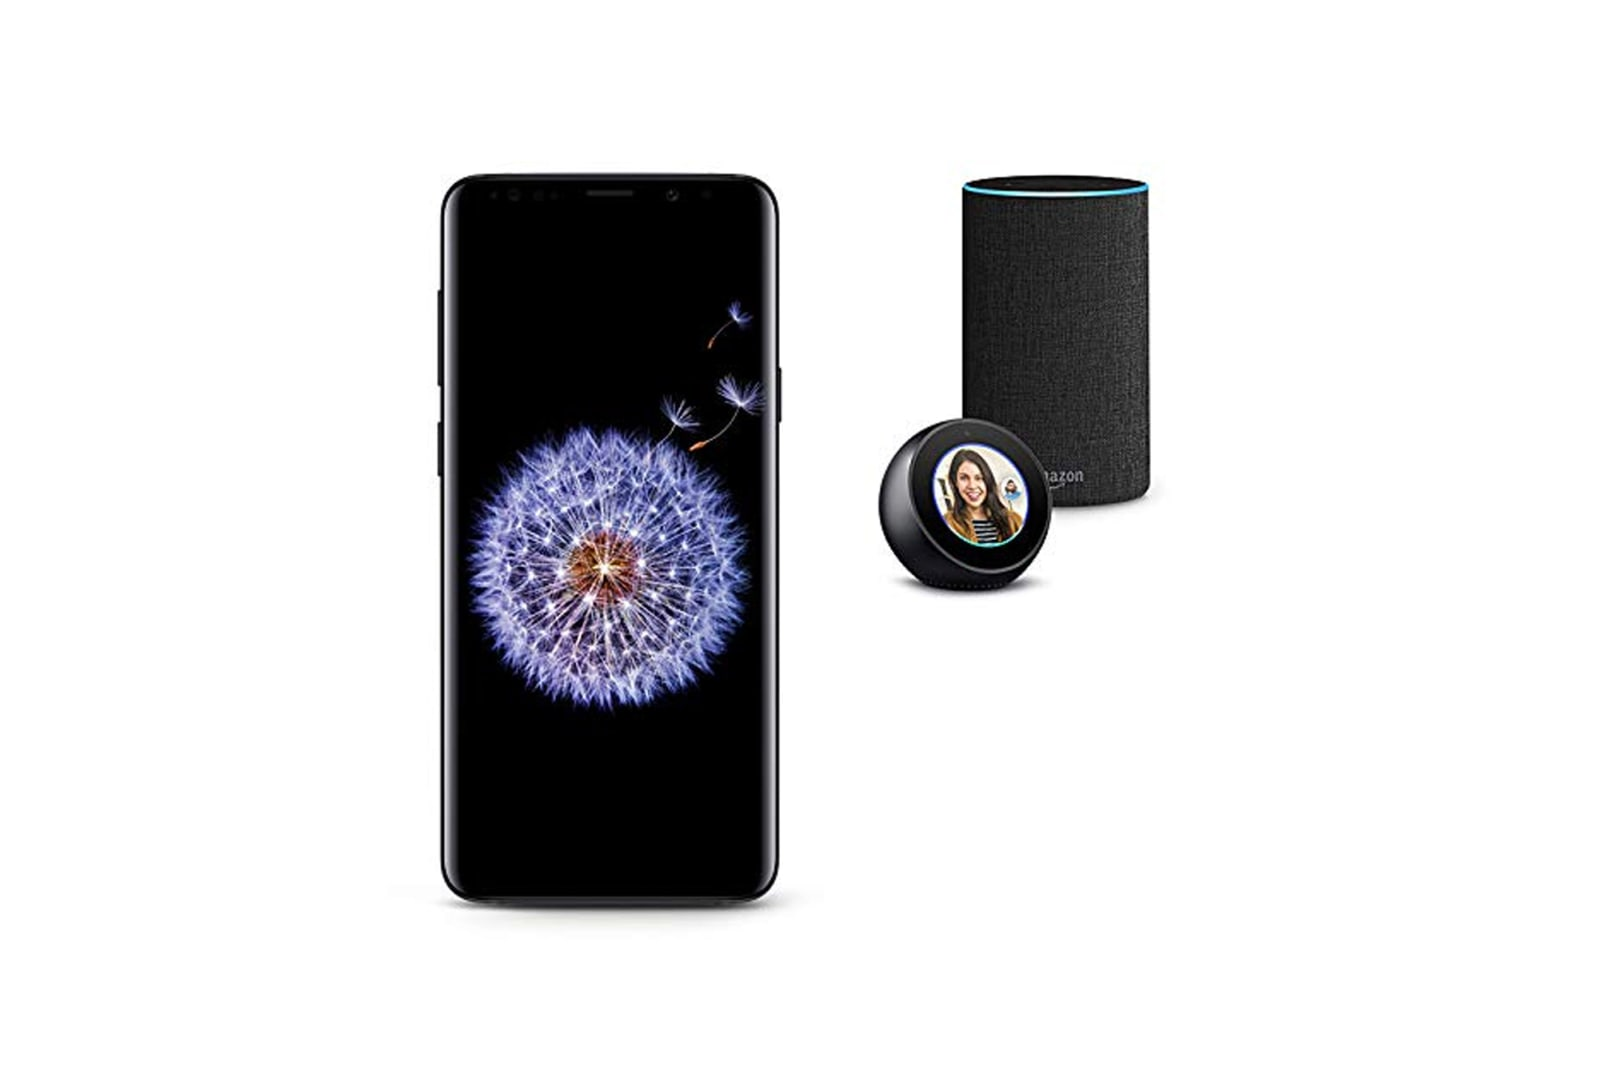 Samsung Galaxy S9, Echo Spot, and Echo Bundle